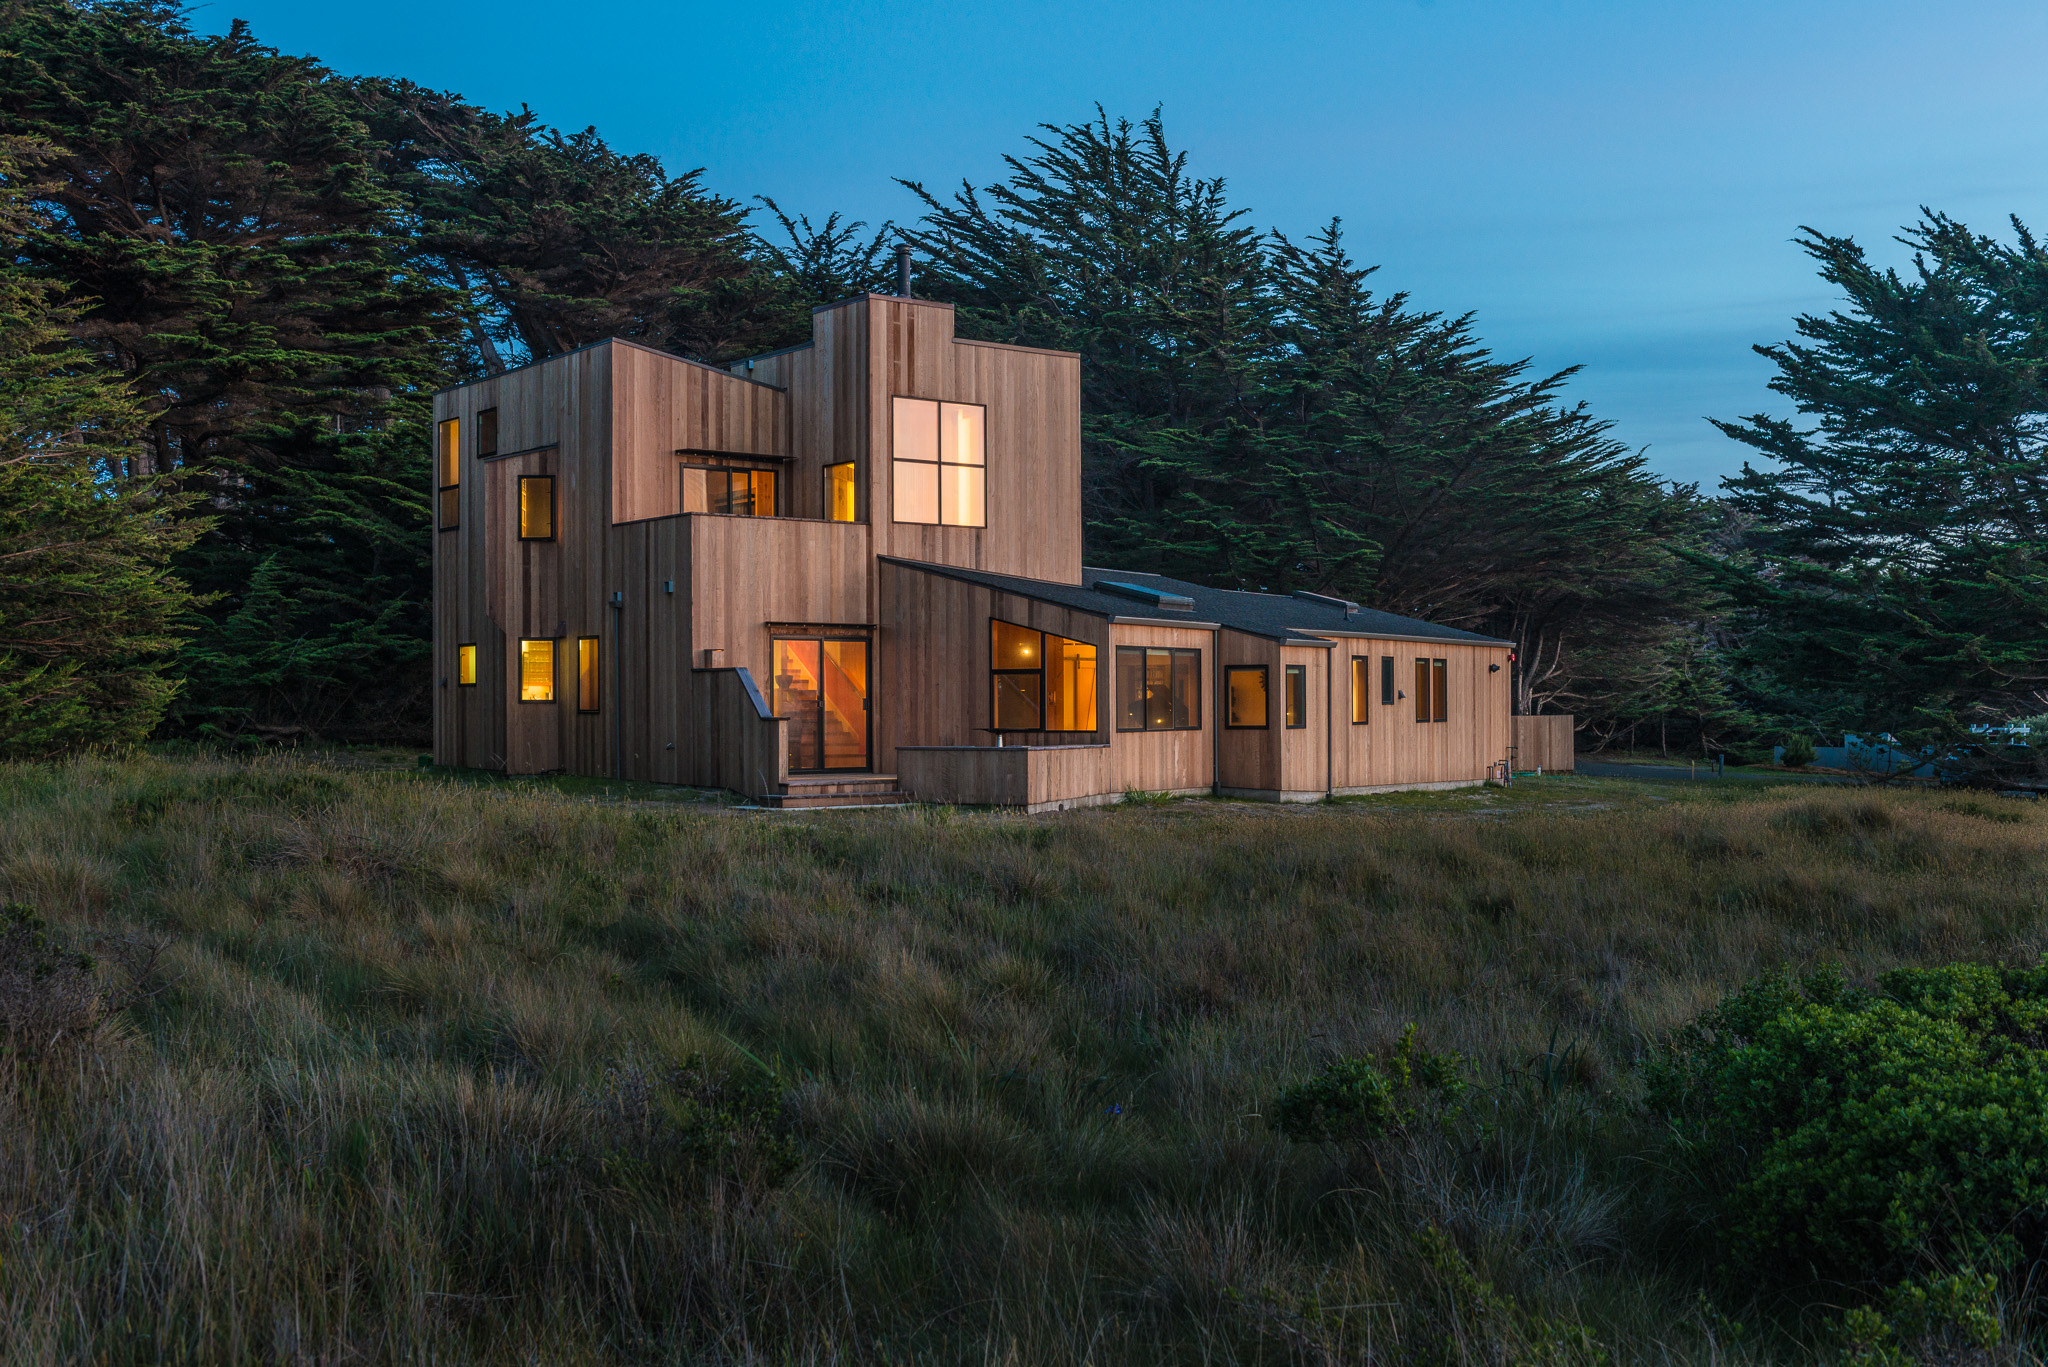 meet the sea ranch singles Free to join & browse - 1000's of latino singles in the sea ranch, california - interracial dating, relationships & marriage online.